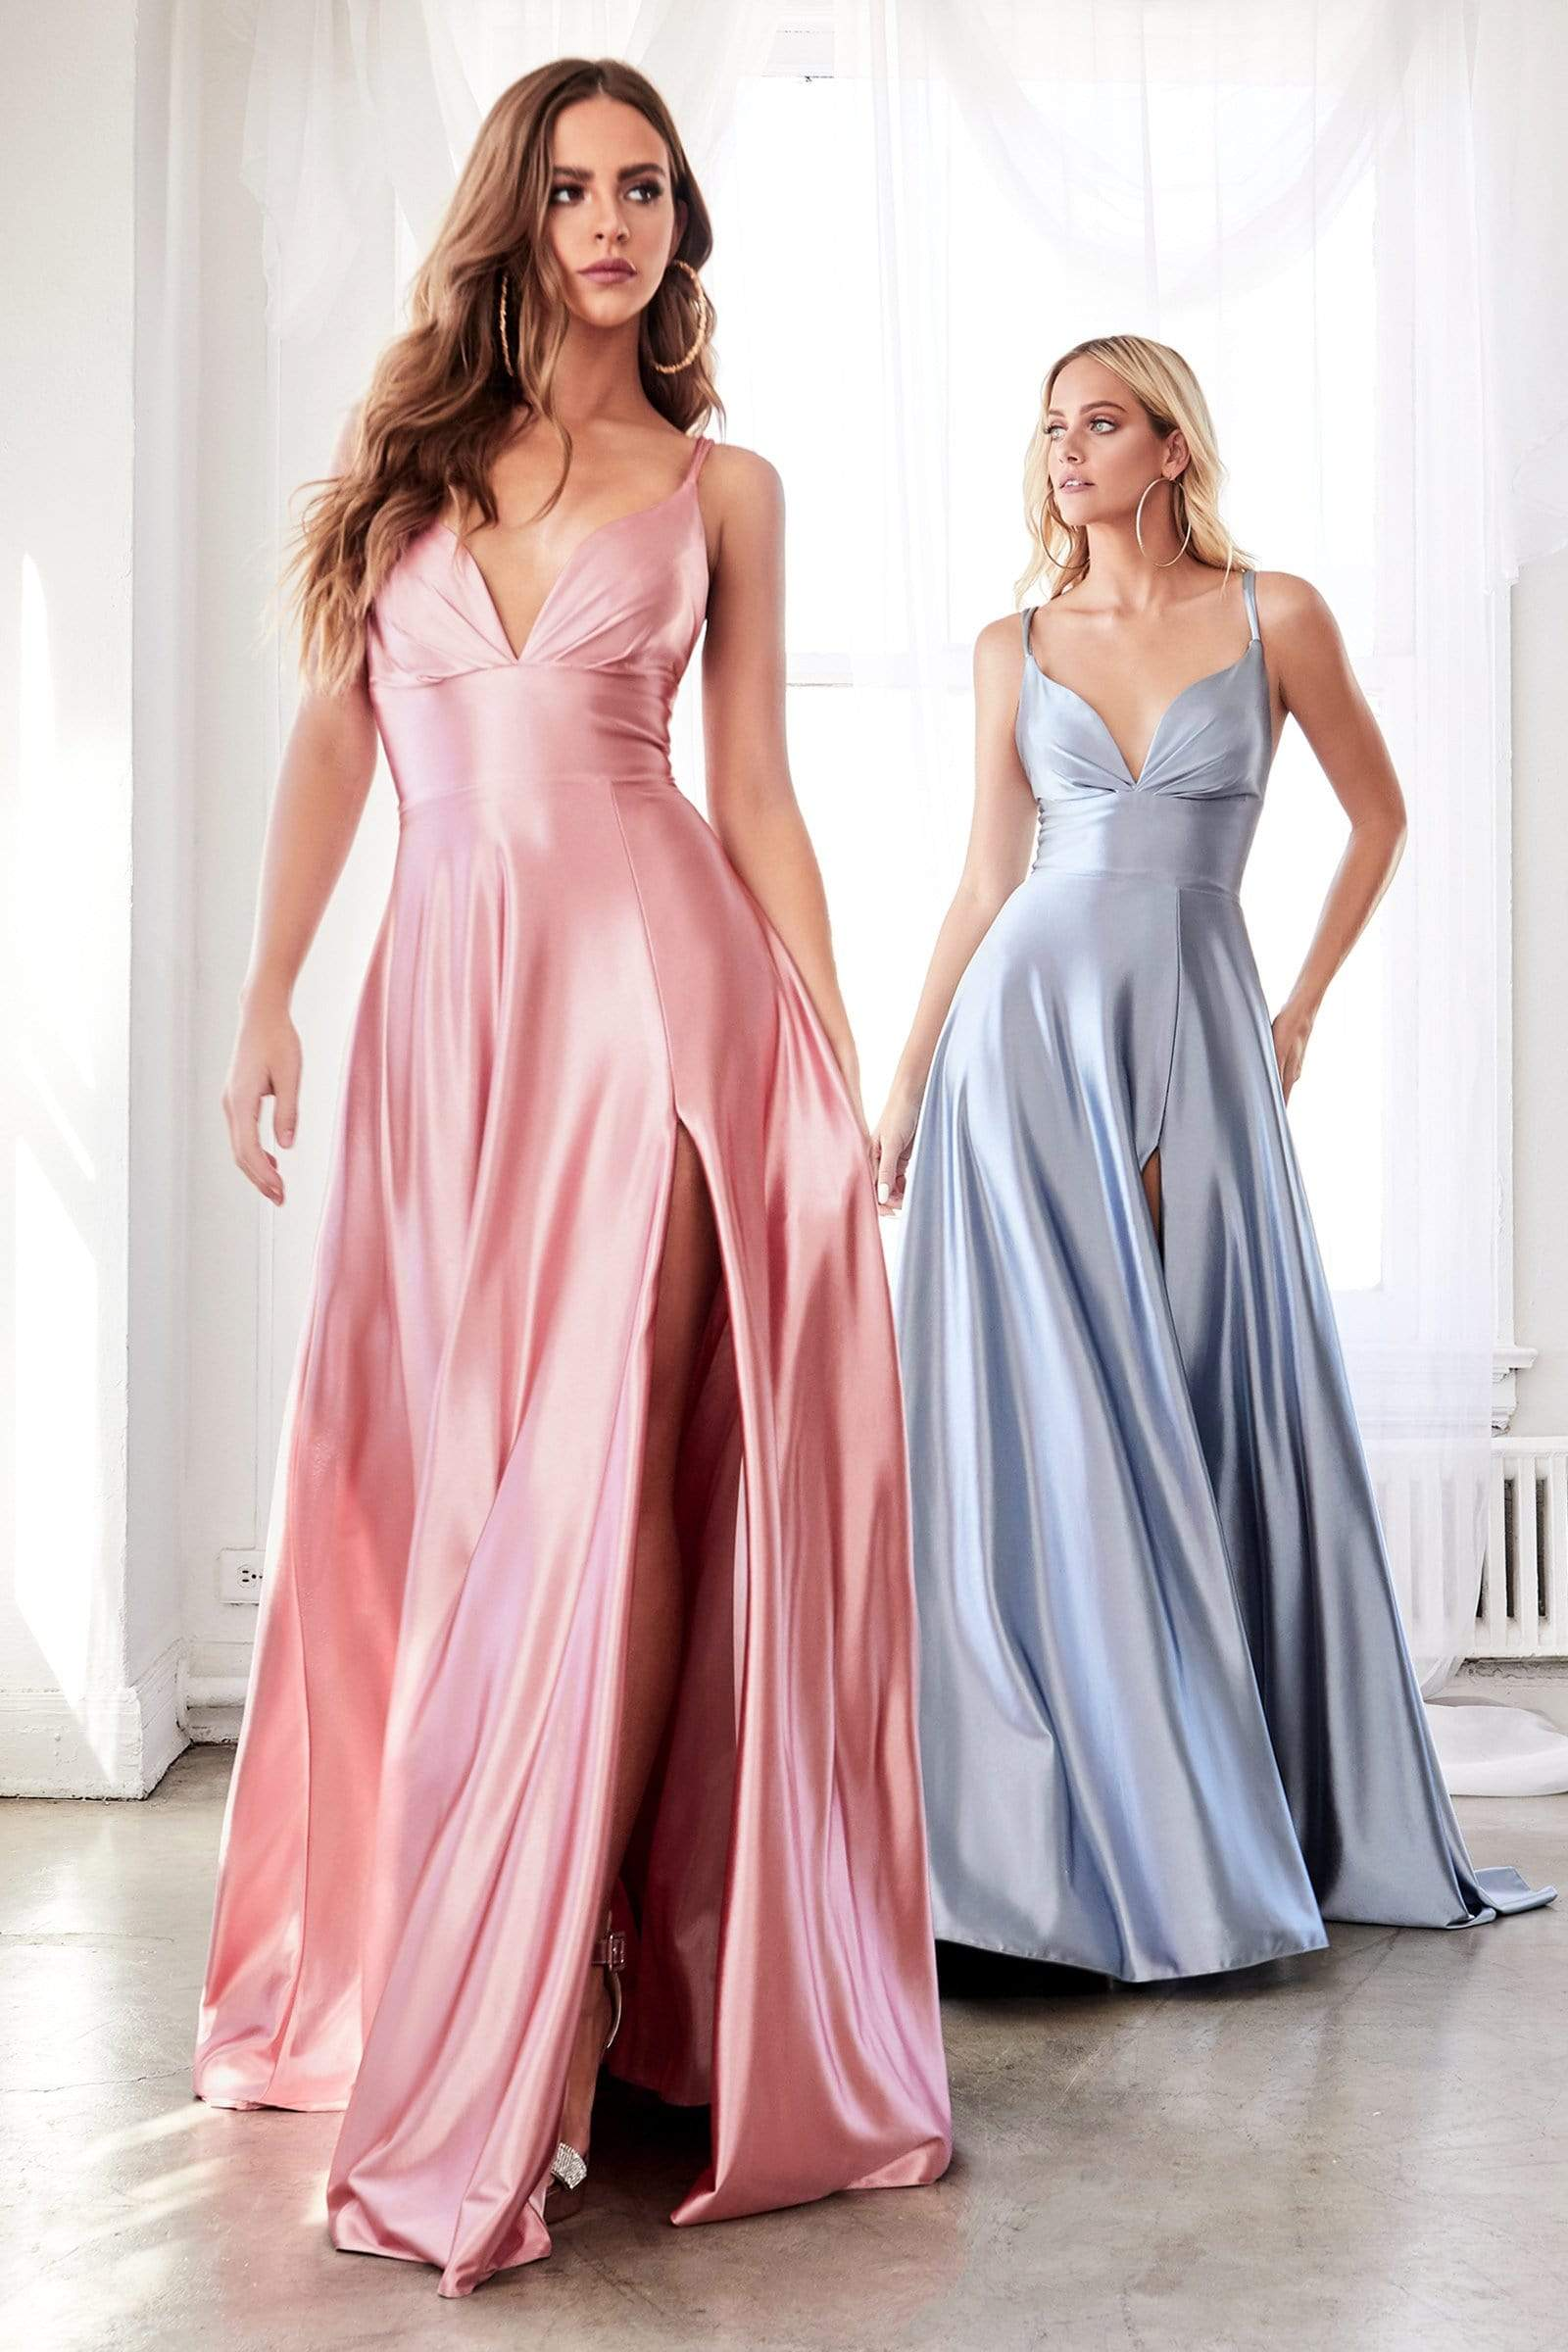 Cinderella Divine - CD903 Deep V-neck Satin A-line Gown Prom Dresses